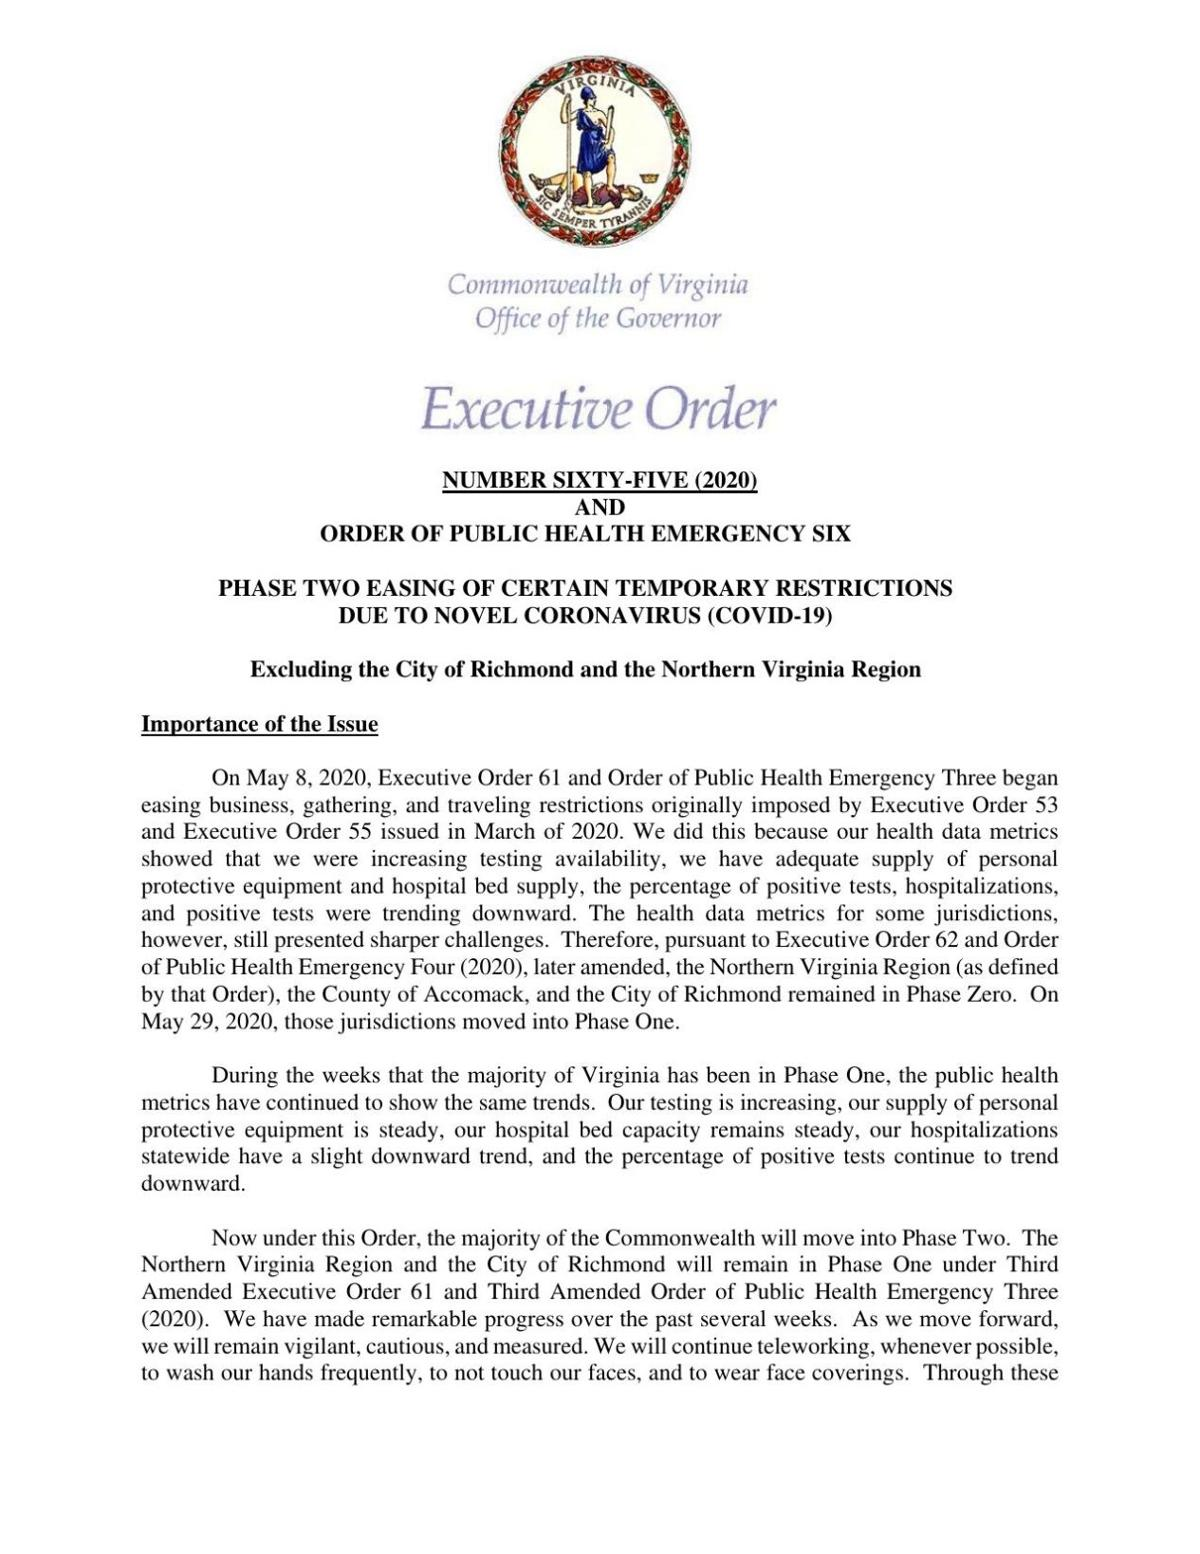 Phase Two Executive Order